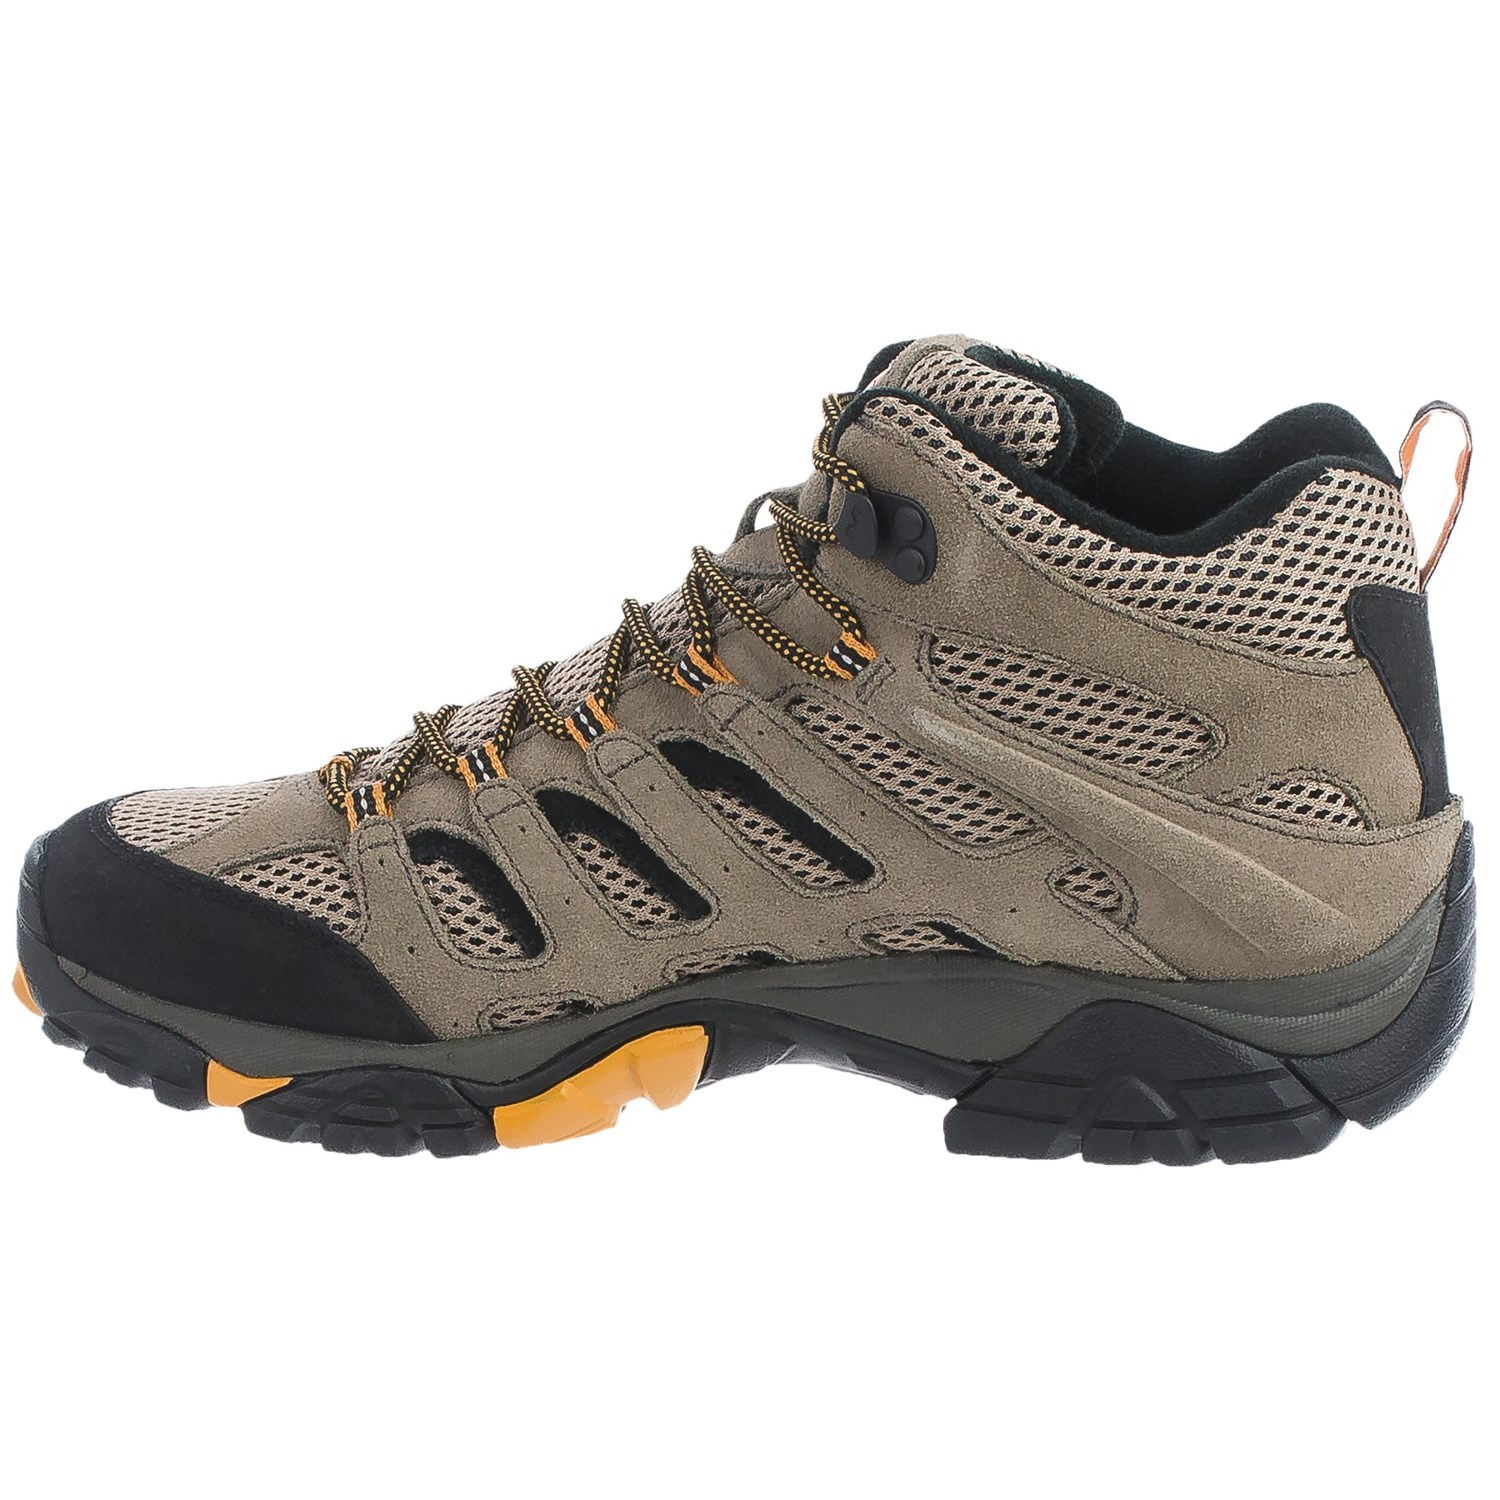 Merrell Moab Ventilator Mid Hiking Boots (For Men) - Save 36%